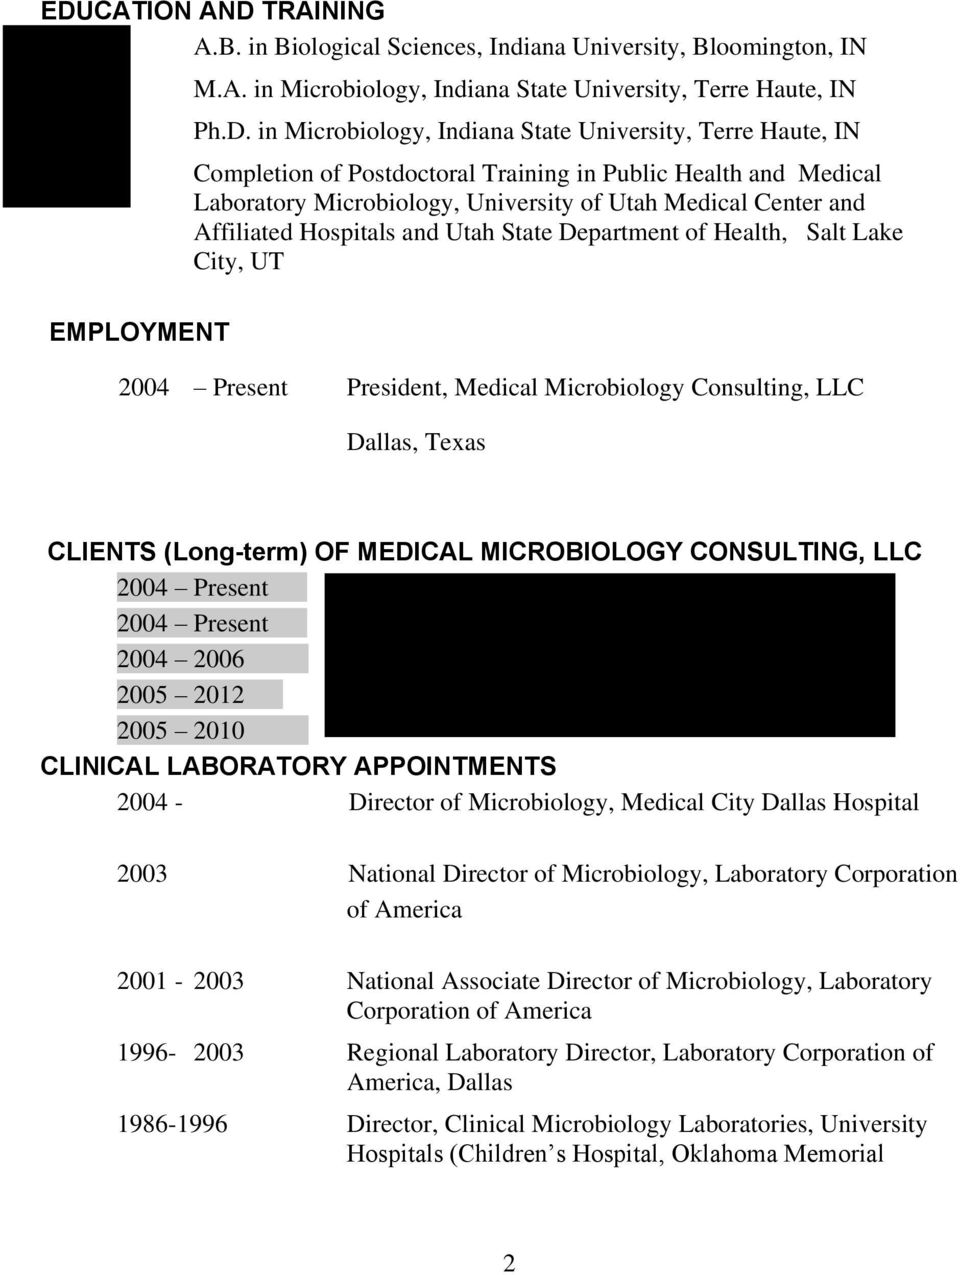 Department of Health, Salt Lake City, UT 2004 Present President, Medical Microbiology Consulting, LLC Dallas, Texas CLIENTS (Long-term) OF MEDICAL MICROBIOLOGY CONSULTING, LLC 2004 Present 2004